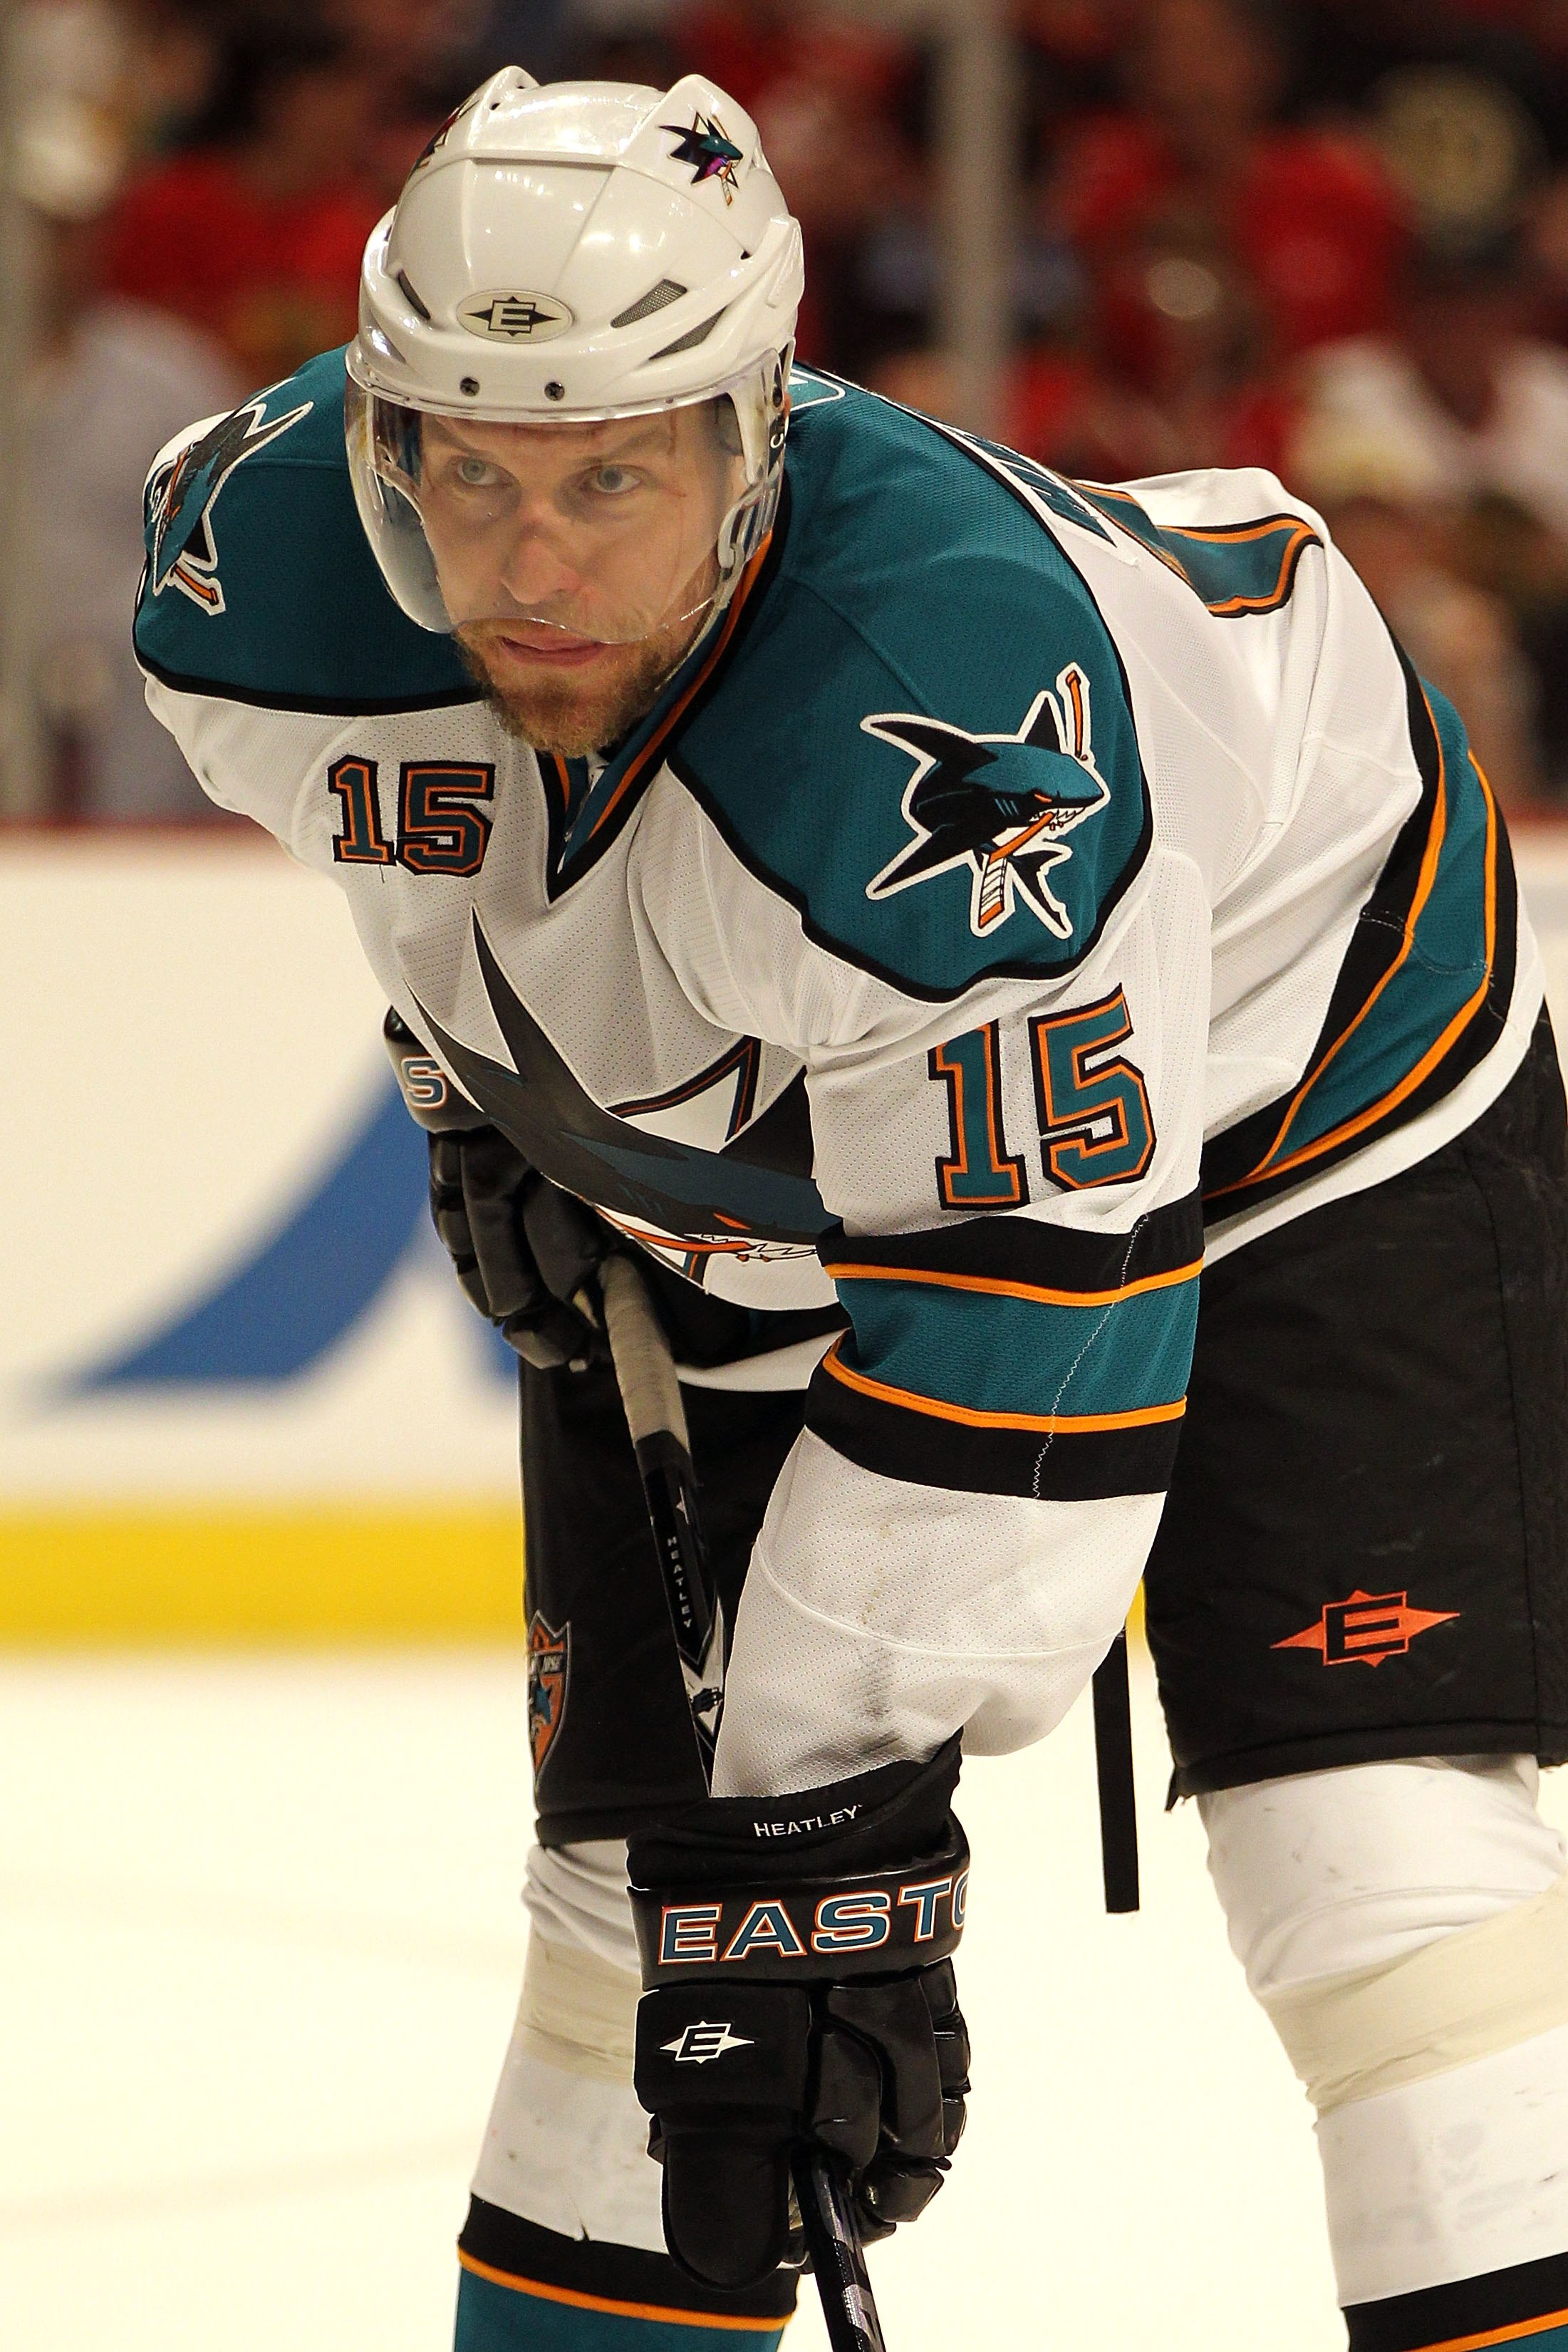 CHICAGO - MAY 23:  Dany Heatley #15 of the San Jose Sharks looks on while taking on the Chicago Blackhawks in Game Four of the Western Conference Finals during the 2010 NHL Stanley Cup Playoffs at the United Center on May 23, 2010 in Chicago, Illinois.  (